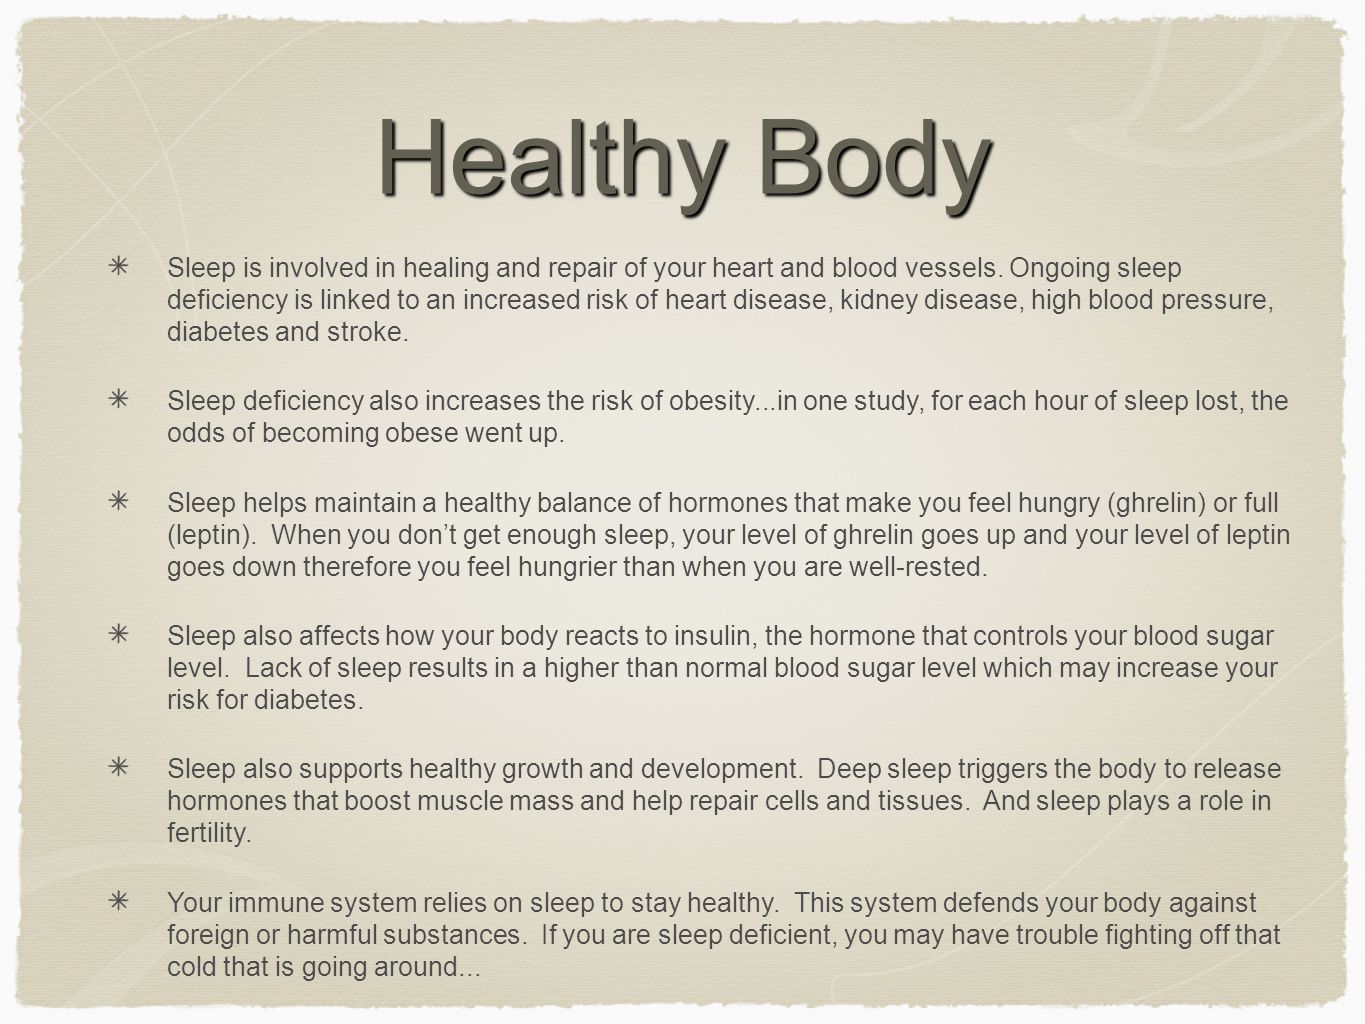 Healthy Body Sleep is involved in healing and repair of your heart and blood vessels.